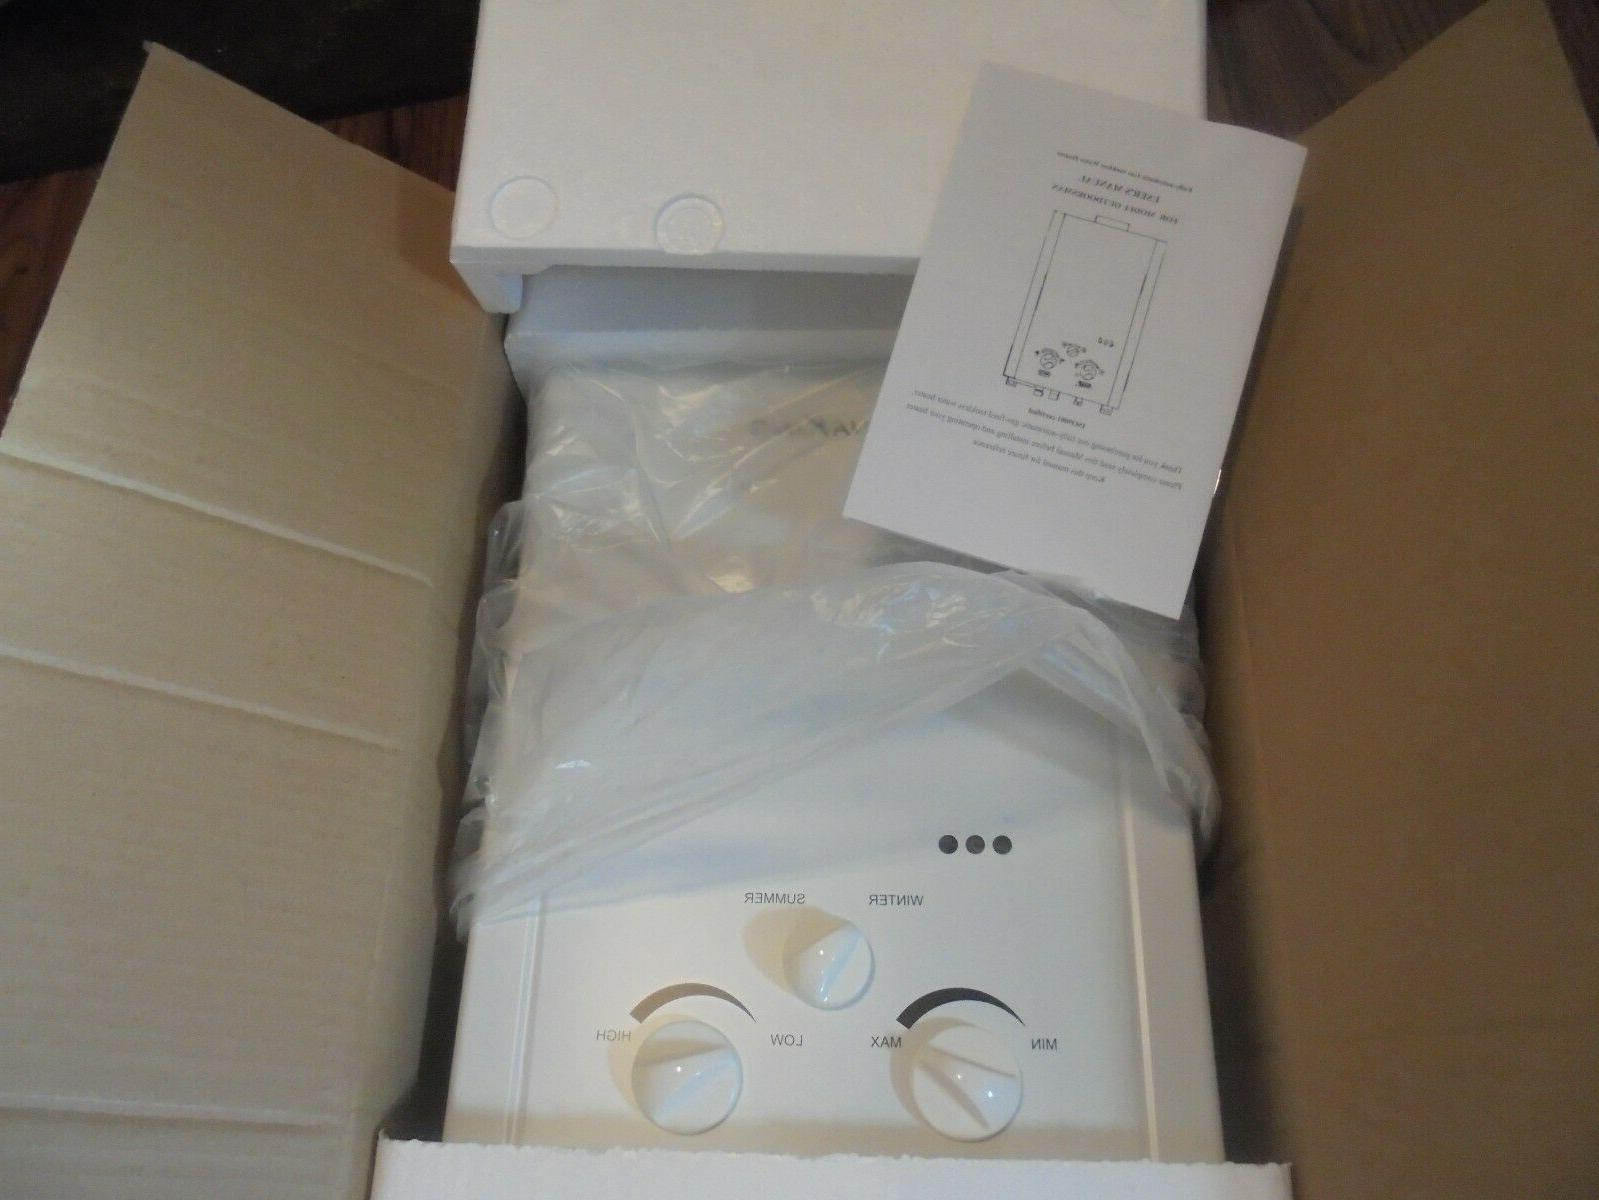 AquaKing Portable Tankless Heater 1.6 New in